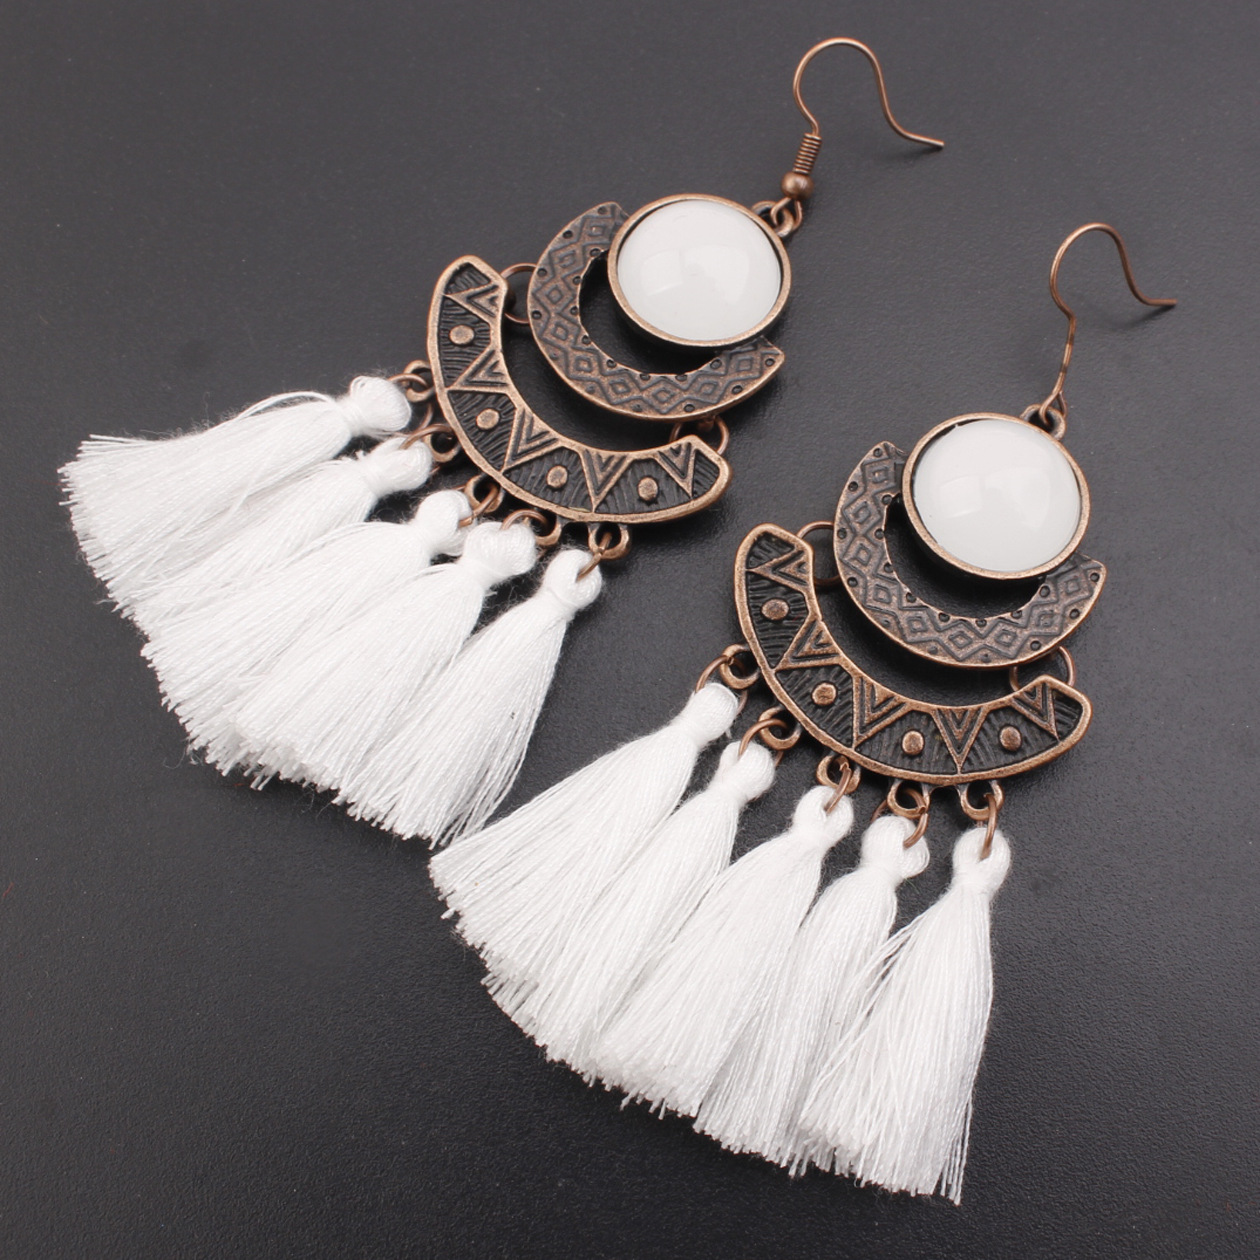 Bohemian-Inspired Colored Tassel Fish Hook Earrings for Boho-Chic Accessories